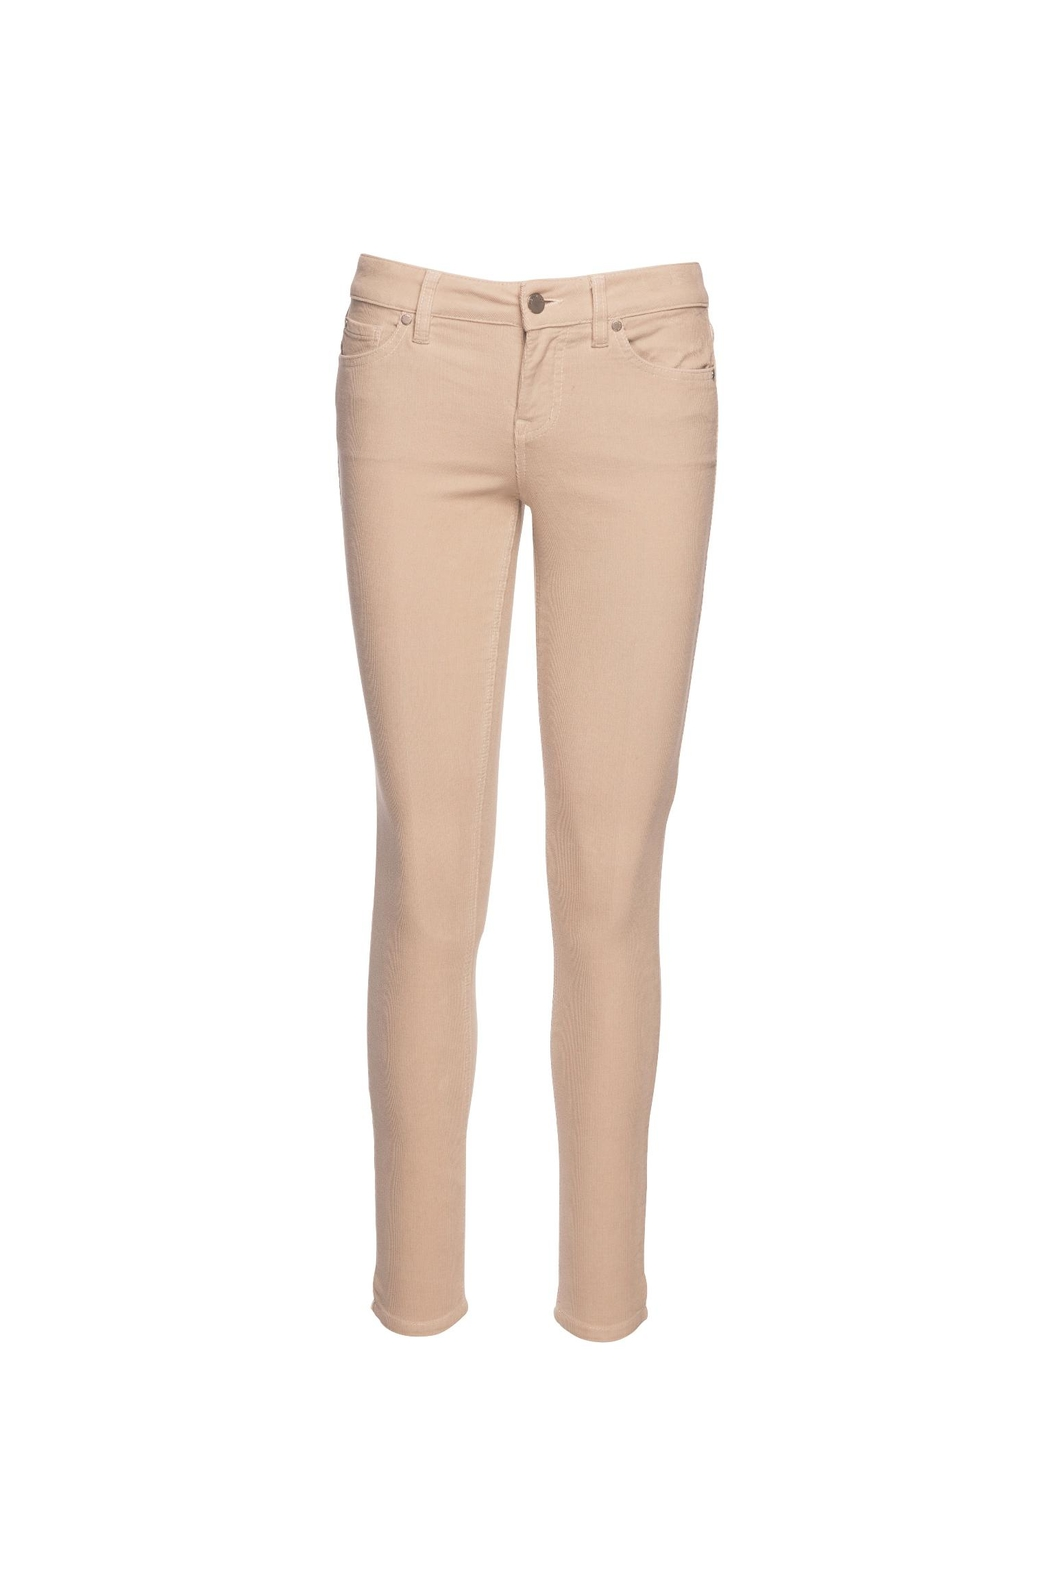 Level 99 Liza Mid Rise Corduroy Jeans - Main Image